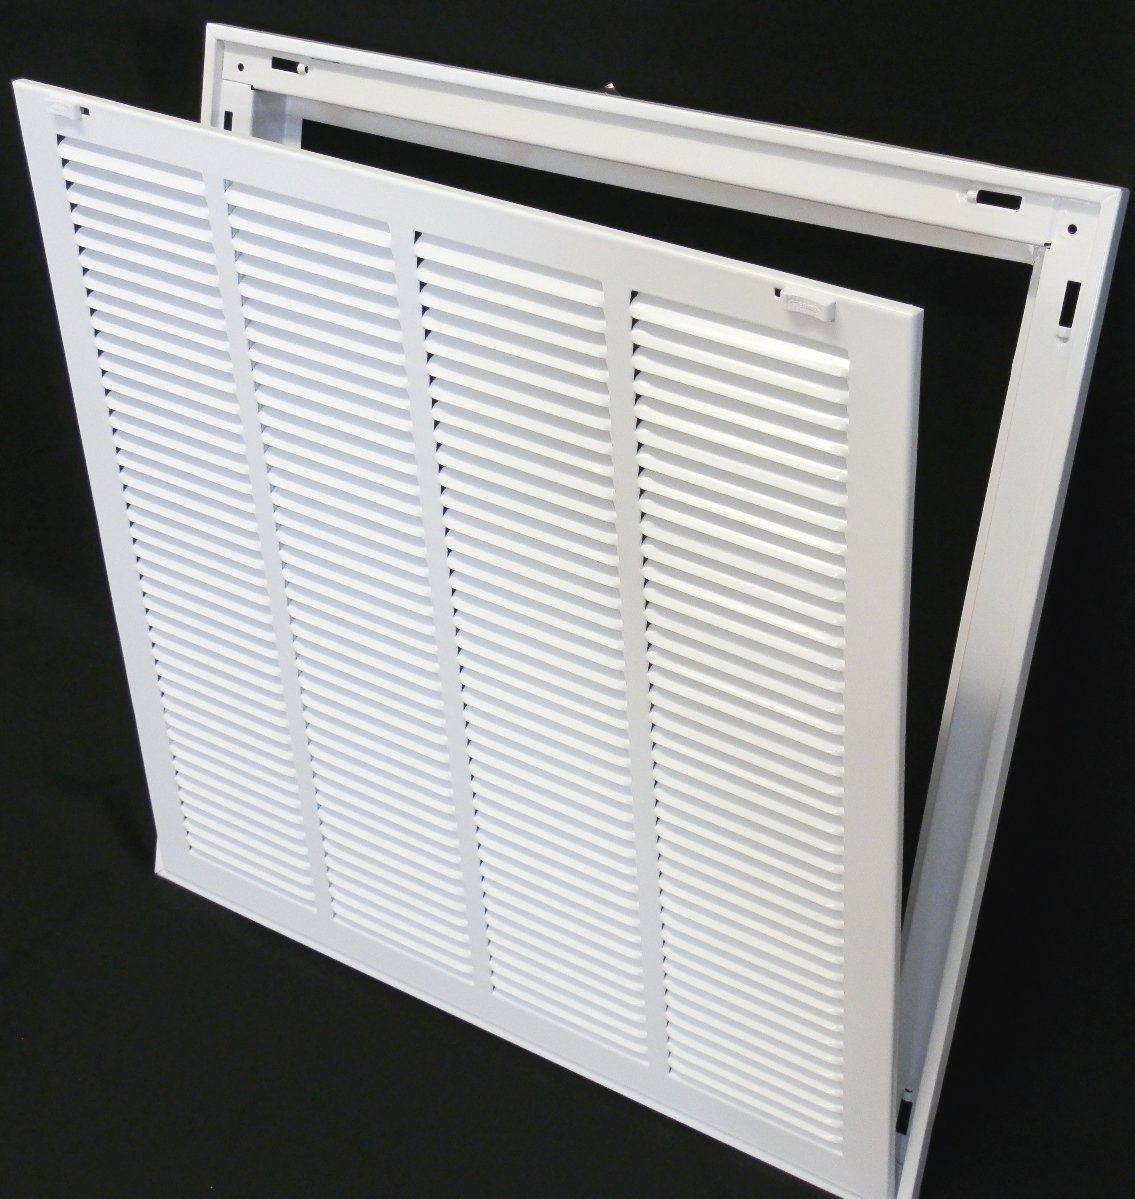 30'' X 14 Steel Return Air Filter Grille for 1'' Filter - Removable Face/Door - HVAC DUCT COVER - Flat Stamped Face - White [Outer Dimensions: 32.5''w X 16.5''h] by HVAC Premium (Image #7)